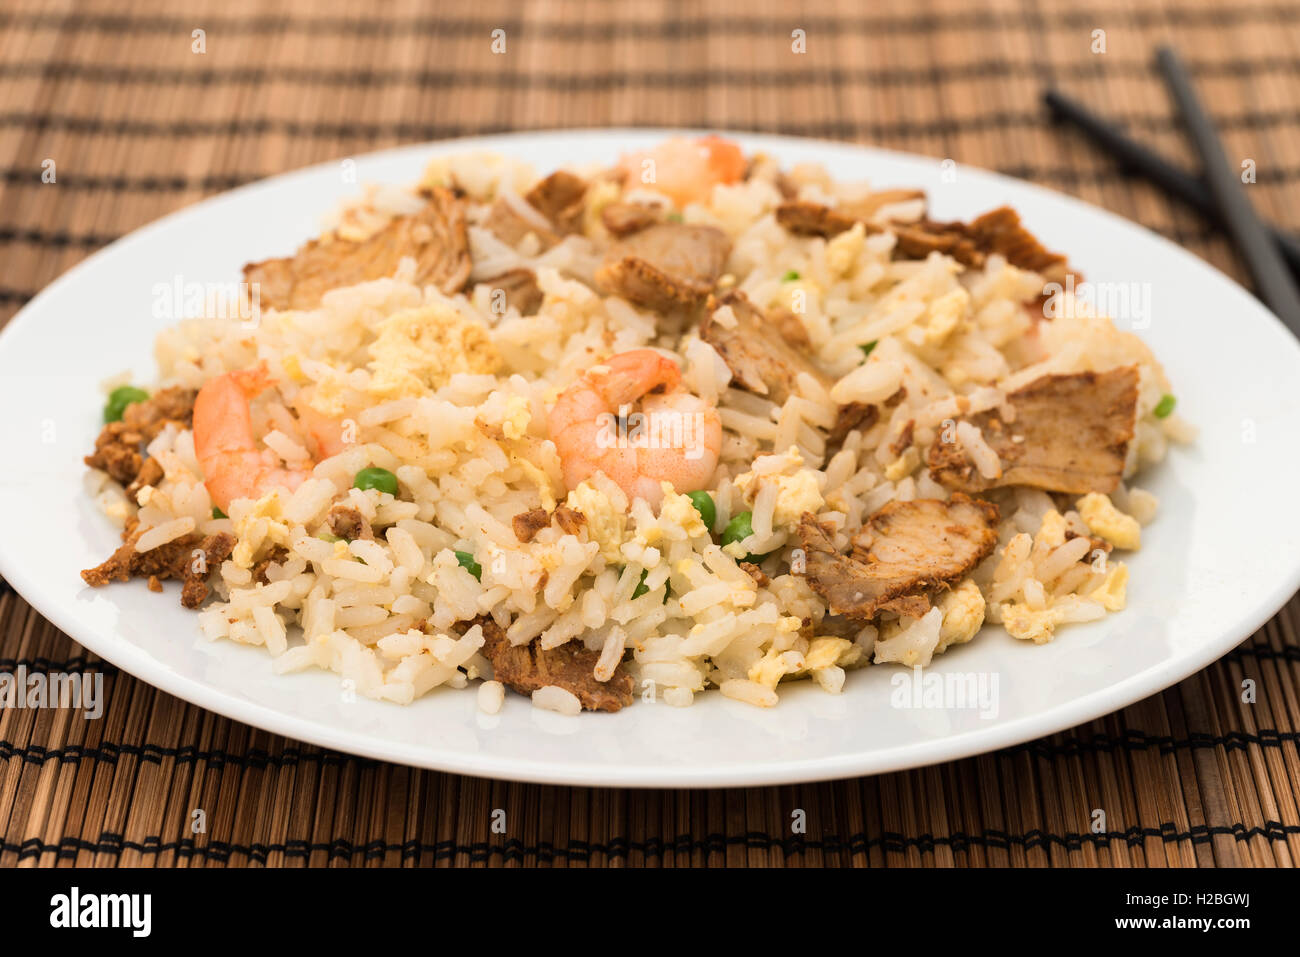 Special fried rice with char siu pork, prawns and egg - Stock Image